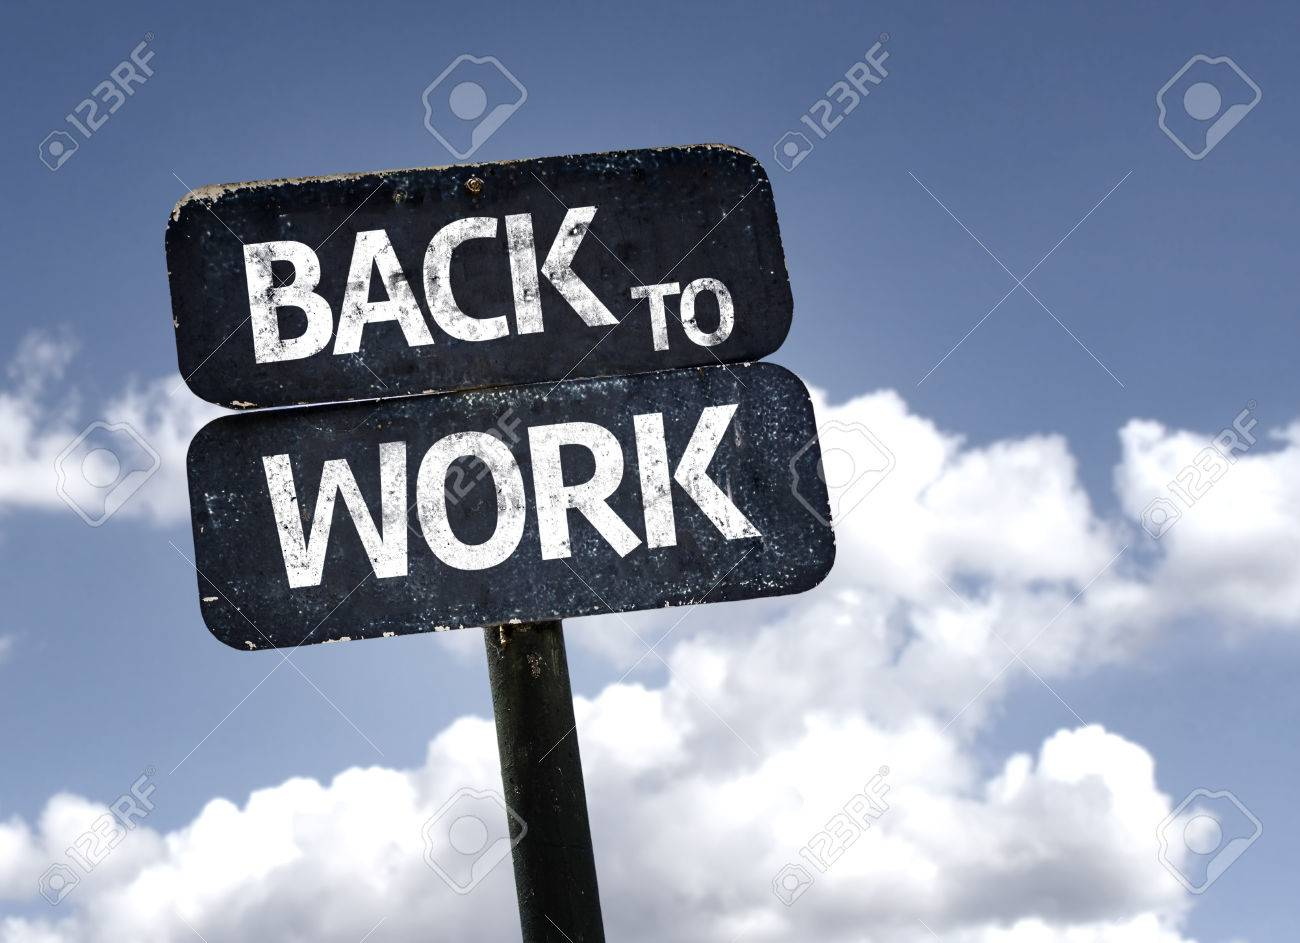 Back To Work : Back to work sign with clouds and sky background stock photo